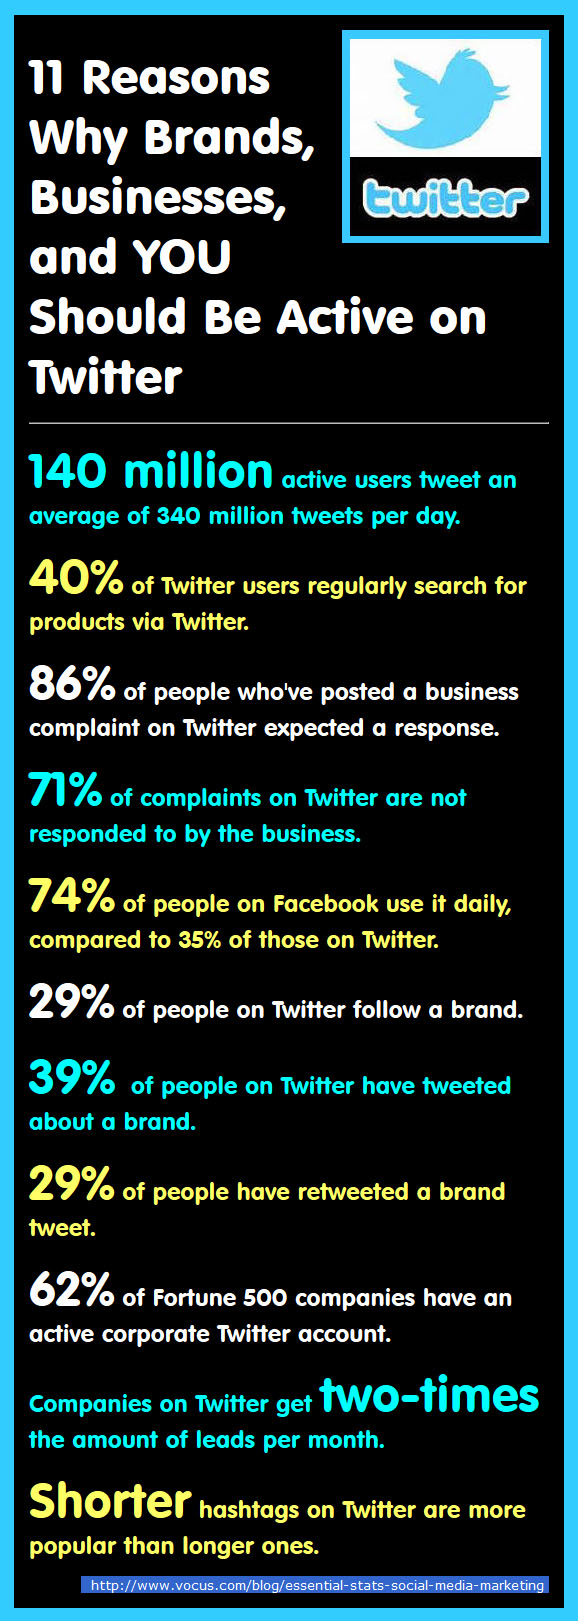 11 Reasons why you need to use Twitter for your Brand, Business and You